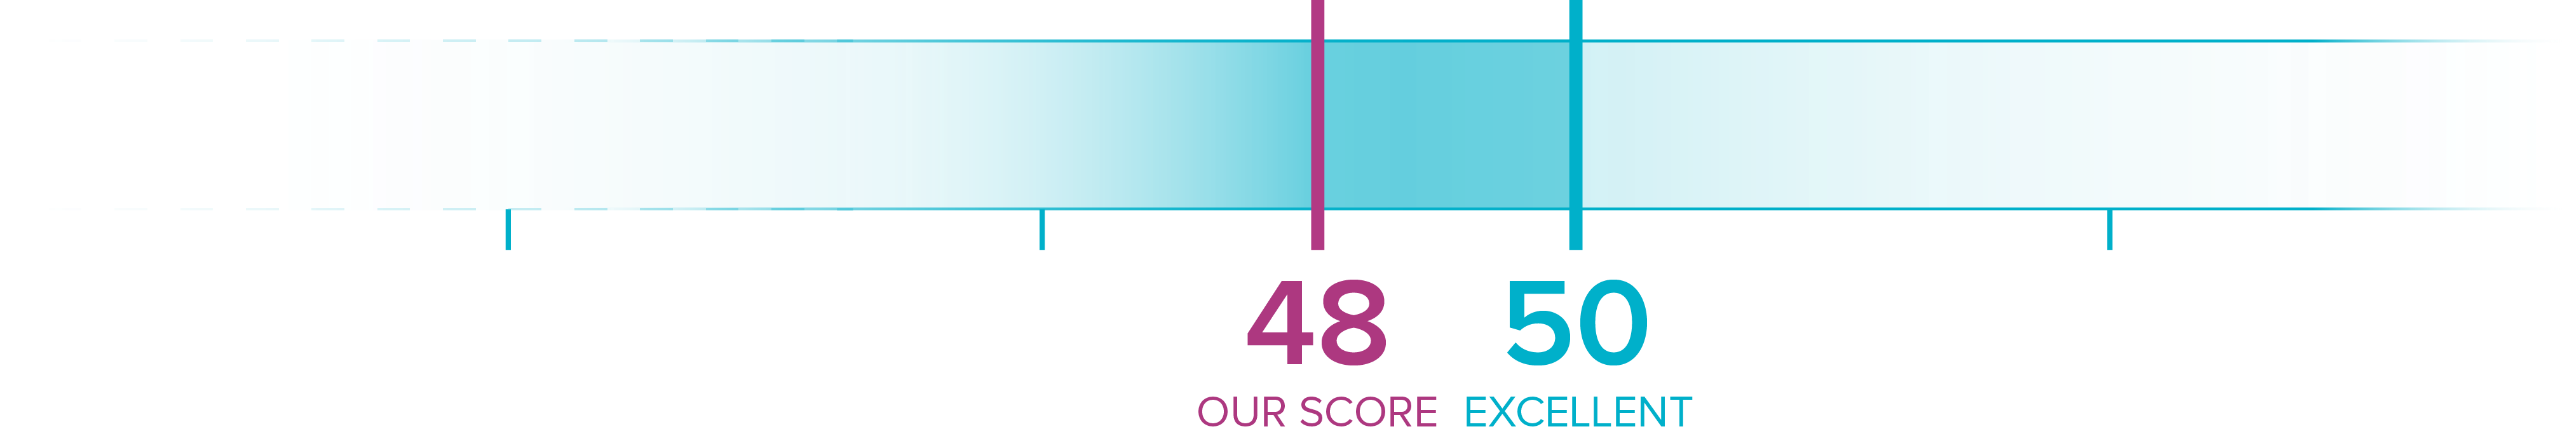 Cantarus Net Promoter Score® 2017